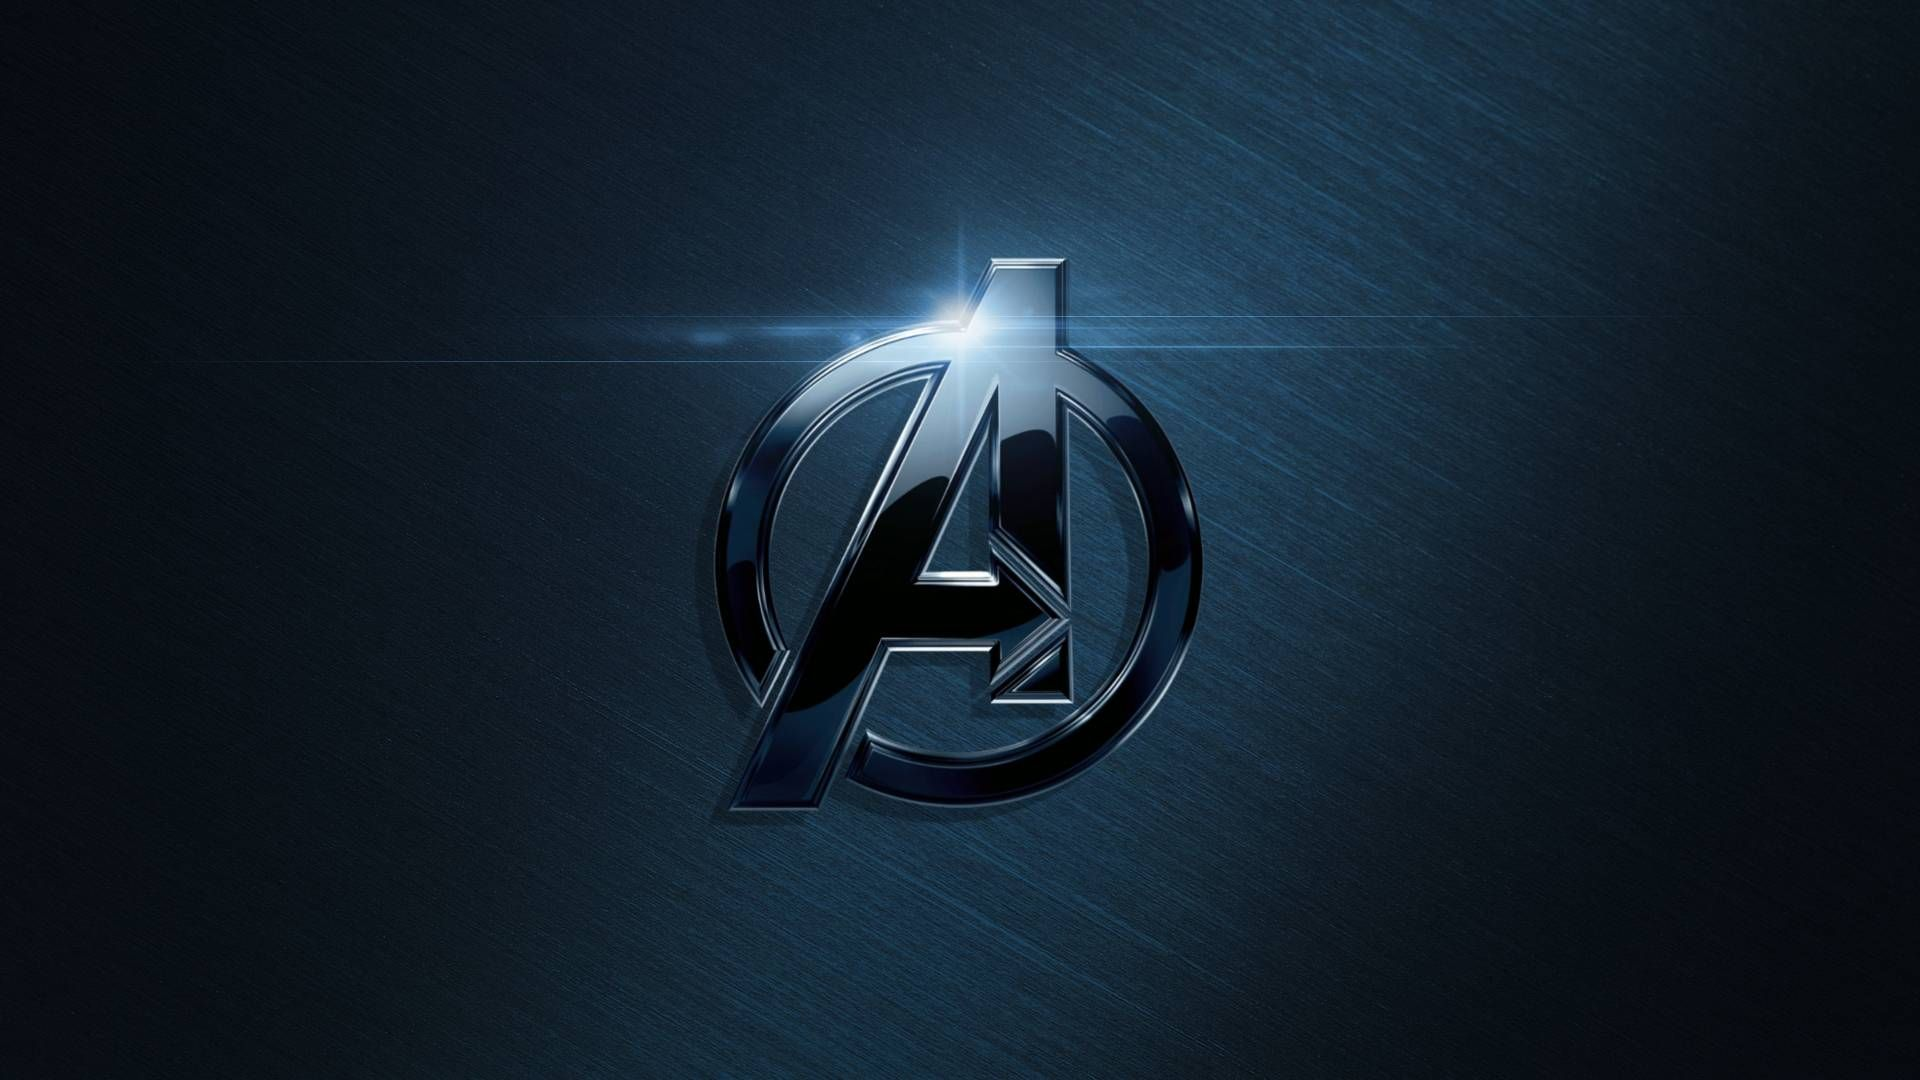 Mtb3esl Jpg 1920 1080 Logo Wallpaper Hd Avengers Logo 4k Wallpapers For Pc